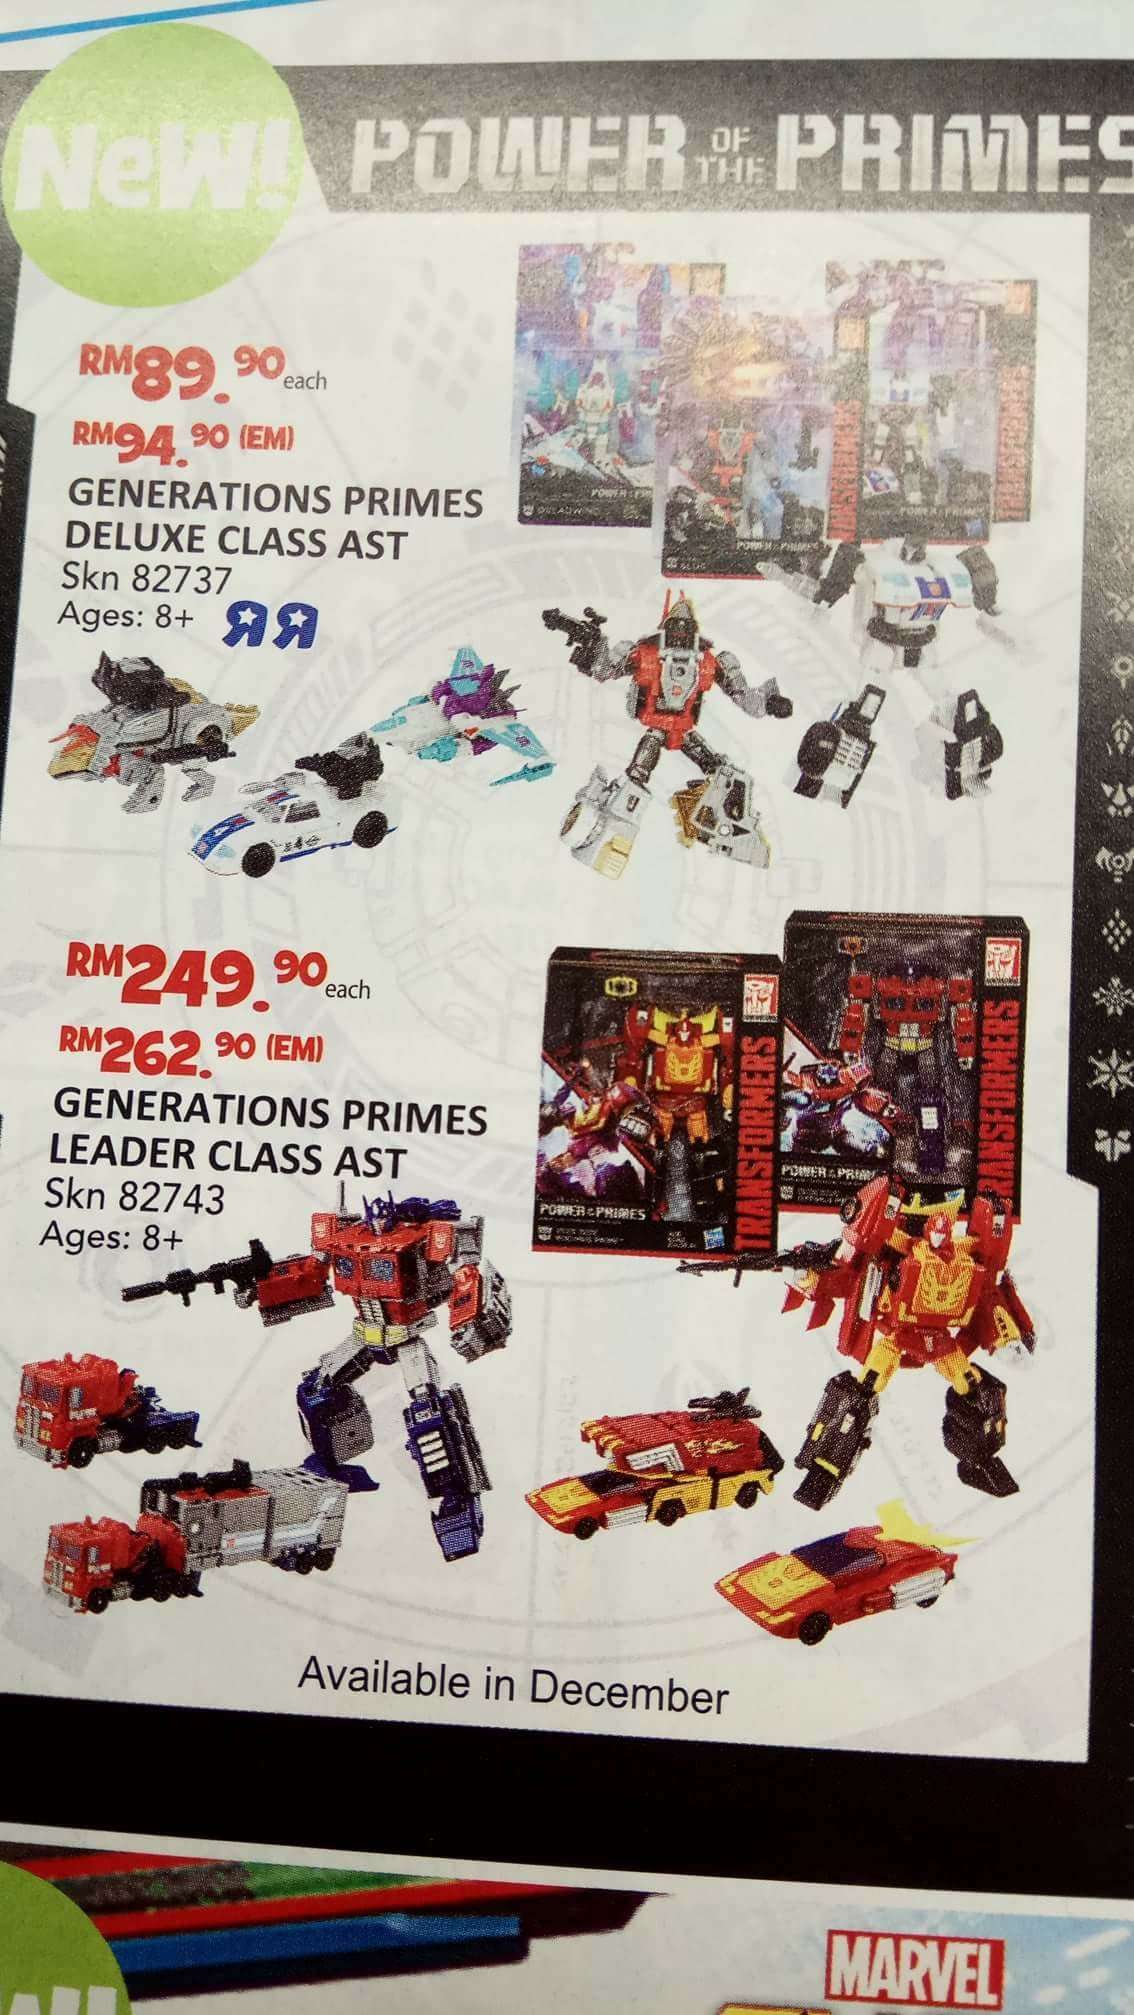 Transformers News: New Images of Transformers Power of the Primes Voyager Starscream, plus Promotional Catalogue